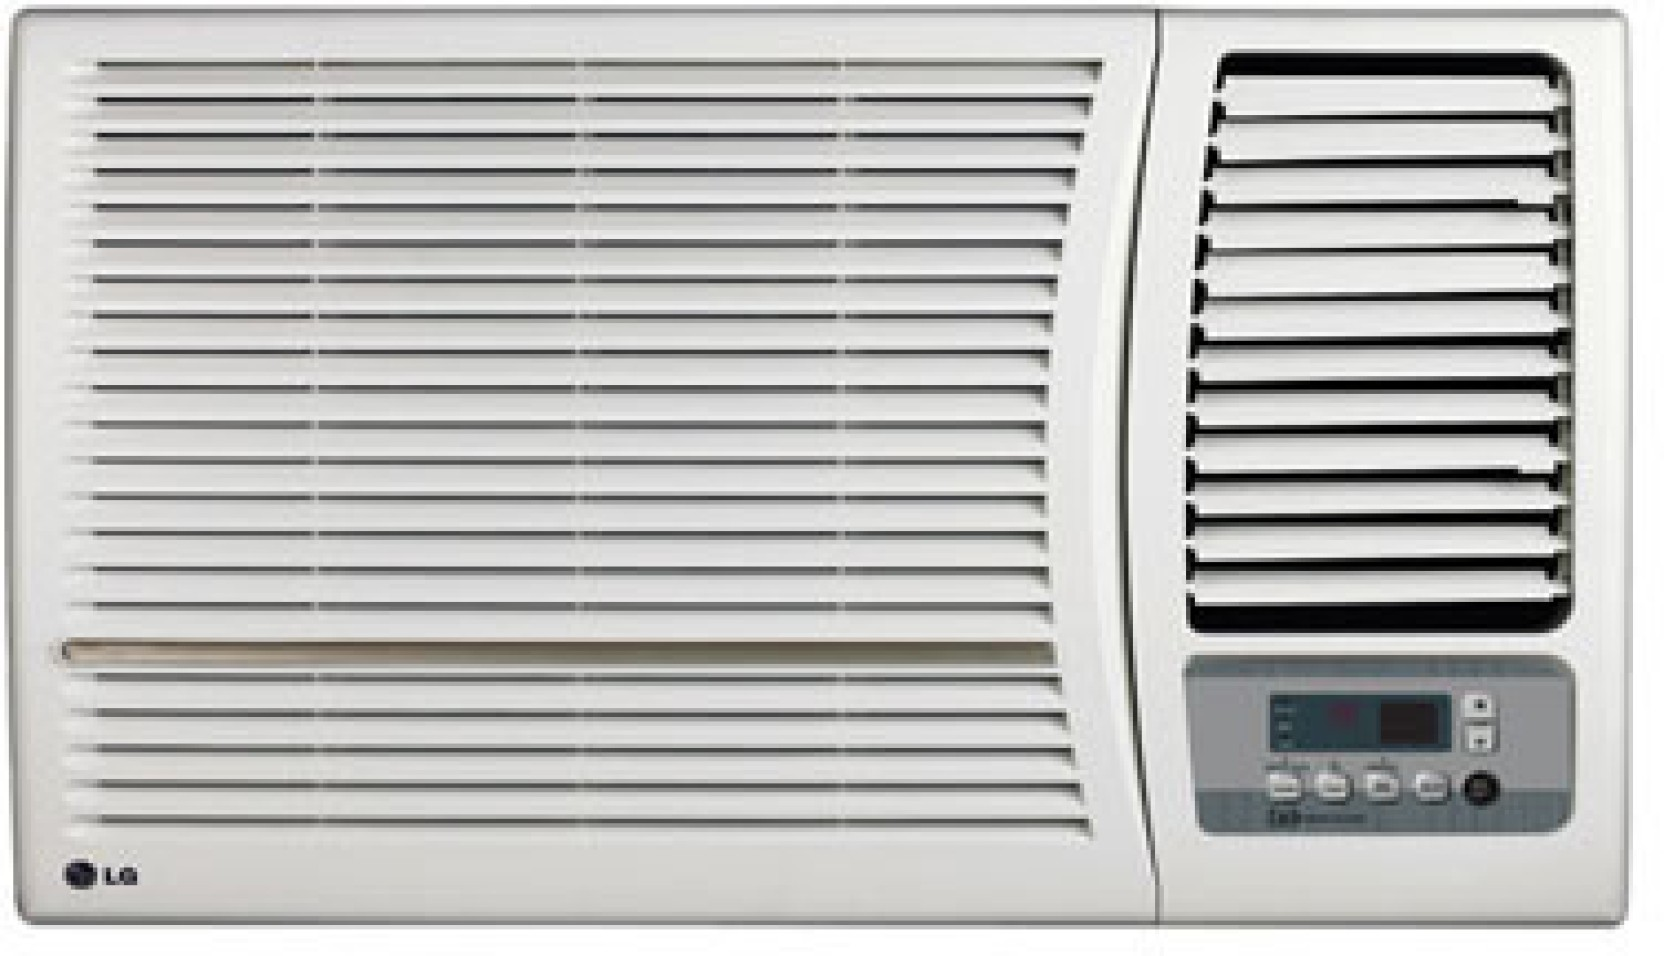 Buy LG 1 Ton 5 Star Window AC White Online at best Prices In India #595145